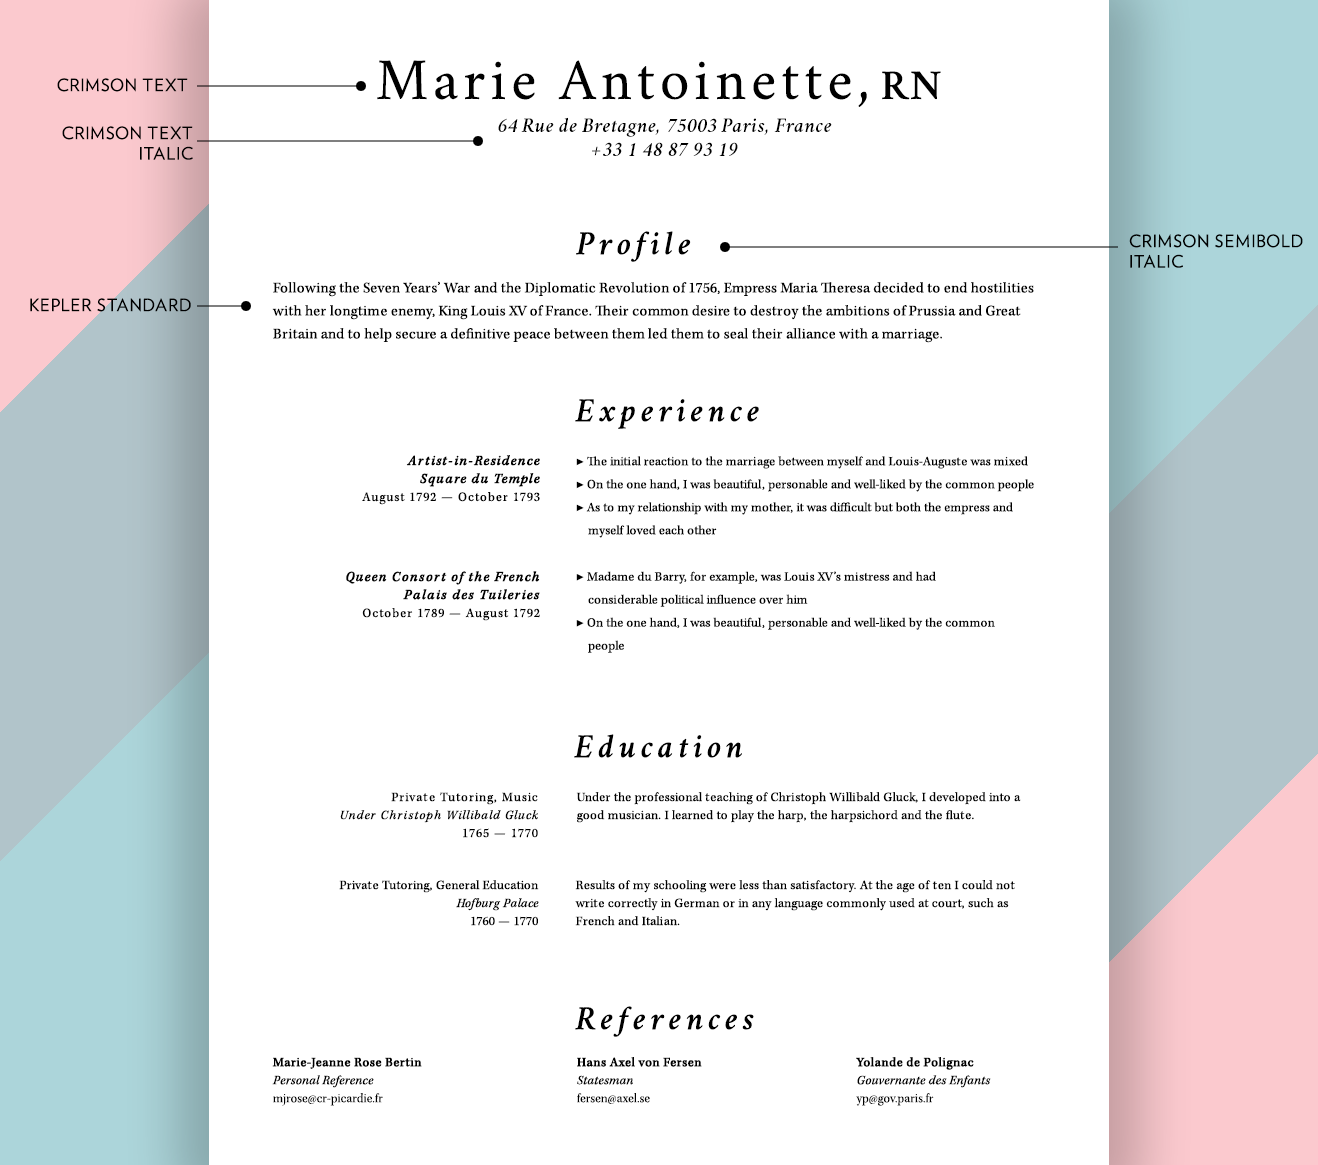 If You Donu0027t Trust Your Own Eye For Design, I Recommend Checking Out Some  Other Seriffed Résumés For Inspiration. Like These Fake Ones That I Just  Made:  Fonts To Use On A Resume